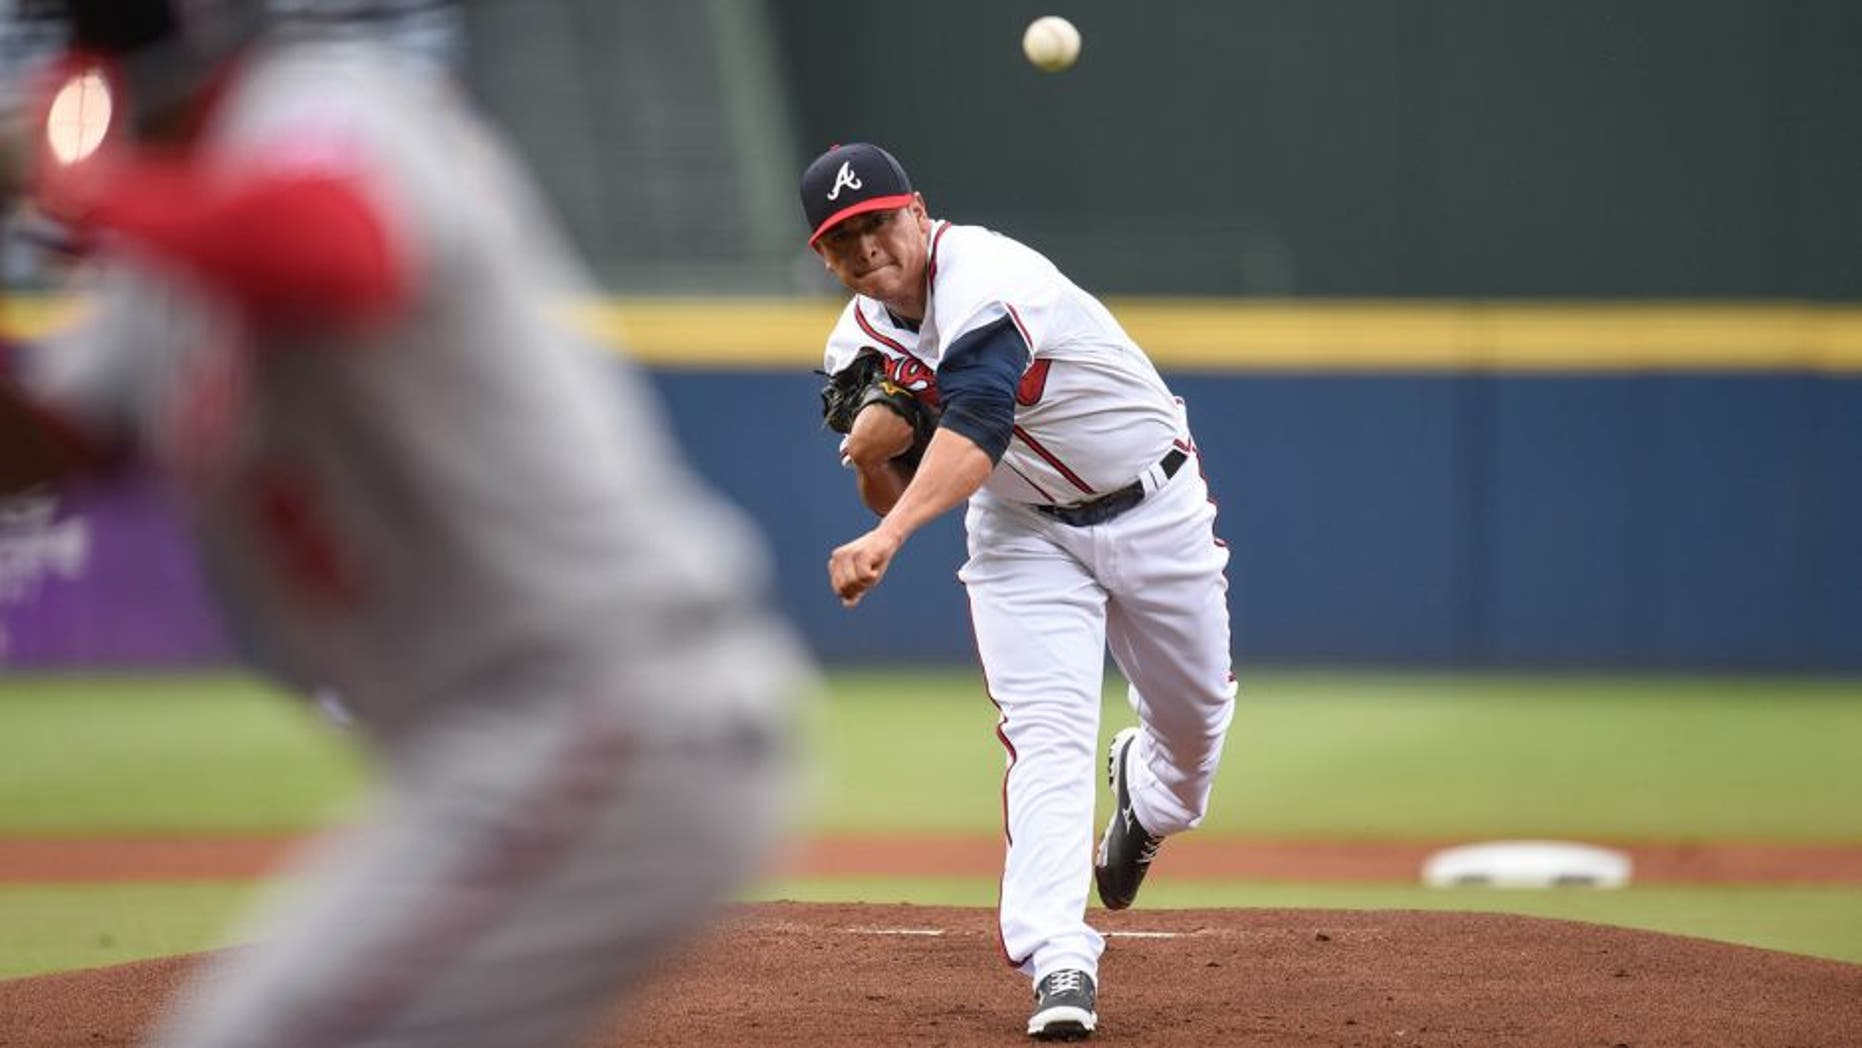 Jul 2, 2015; Atlanta, GA, USA; Atlanta Braves starting pitcher Manny Banuelos (60) pitches against the Washington Nationals during the first inning at Turner Field. Mandatory Credit: Dale Zanine-USA TODAY Sports